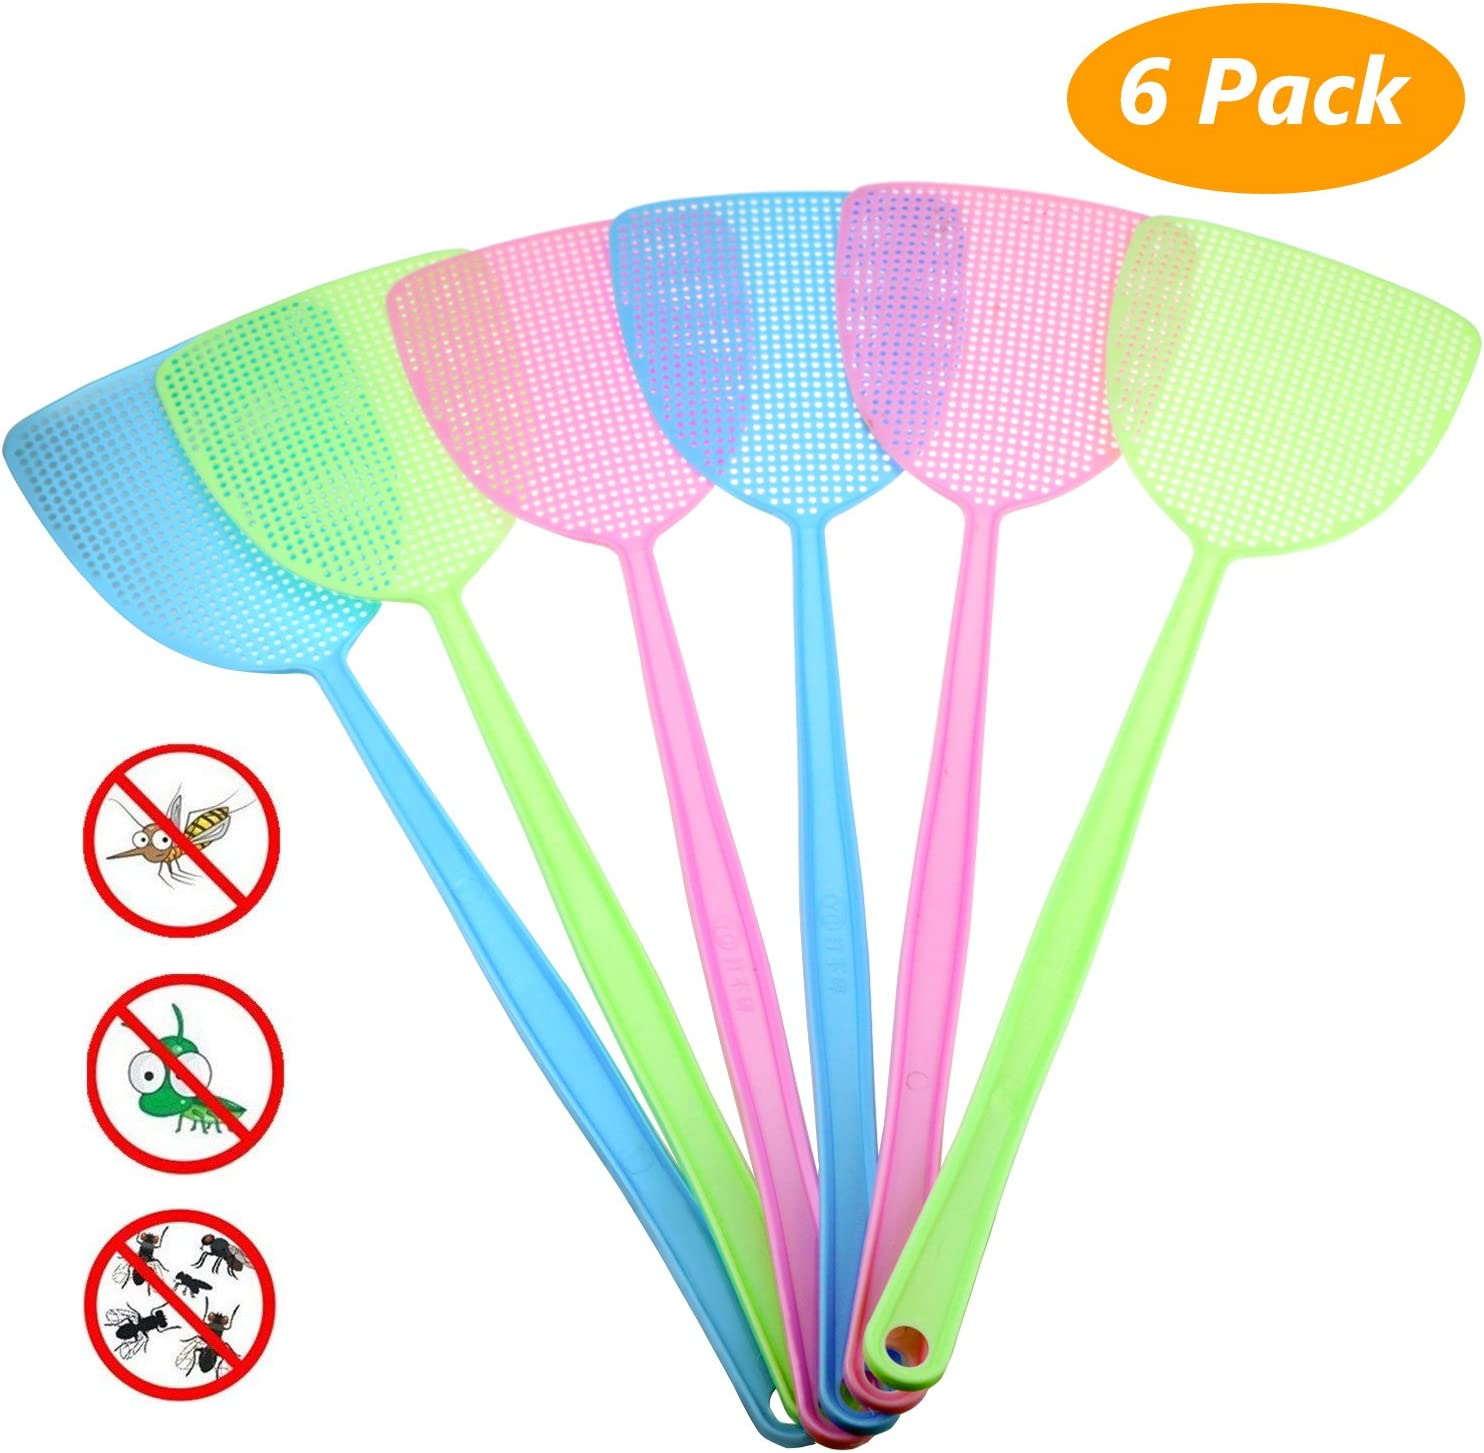 Homga Fly Swatter, Manual Plastic Swat Pest Control with 17.5'' Long Durable Handle Assorted Colors Pack of 6 (1) 71I9XI4CZjL